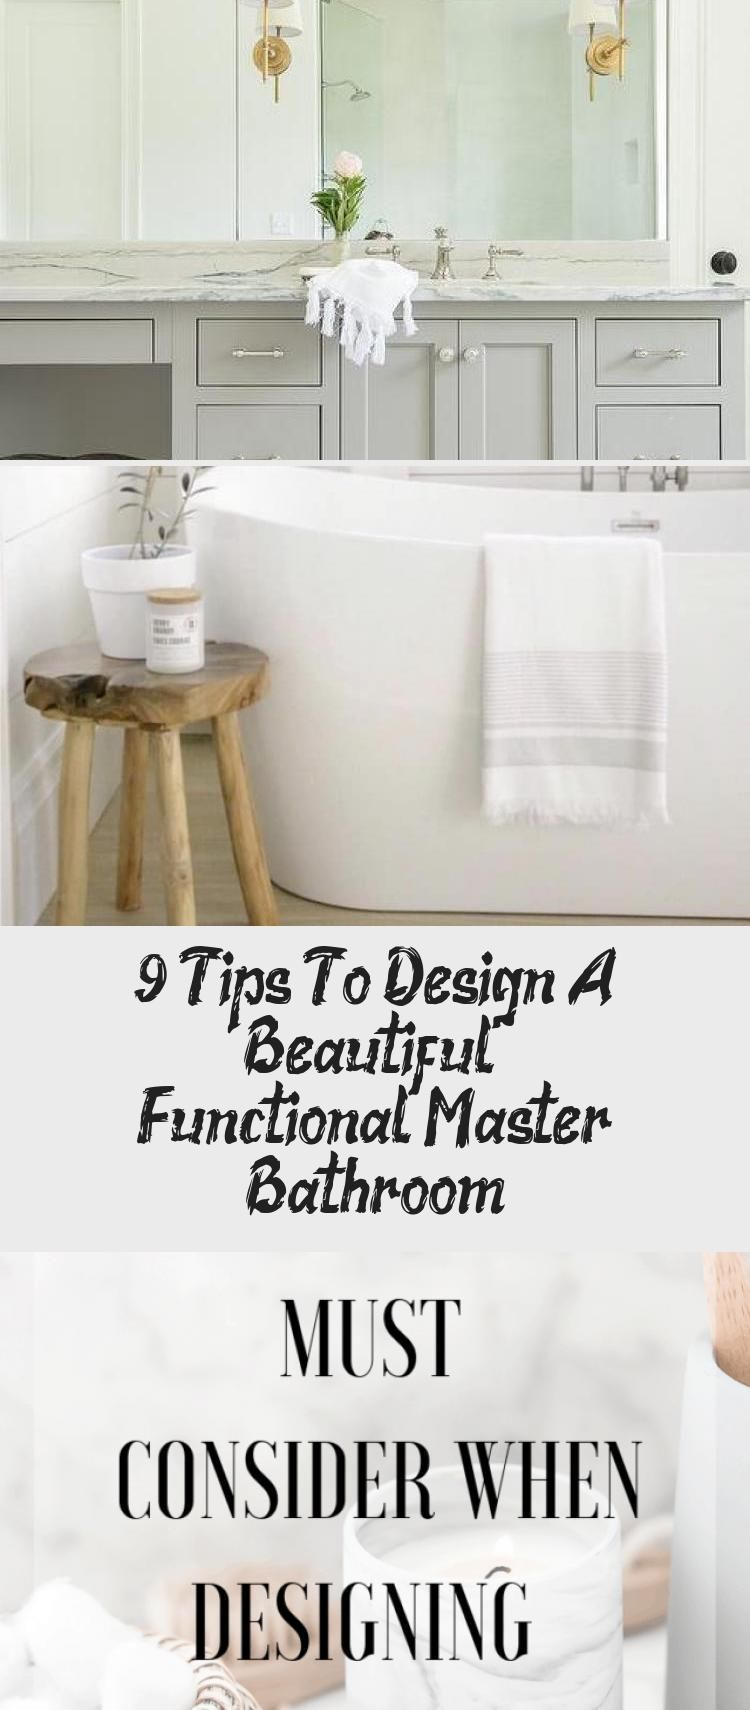 Enchanting luxurious master bathroom decorating ideas for master baths and smallbathroom